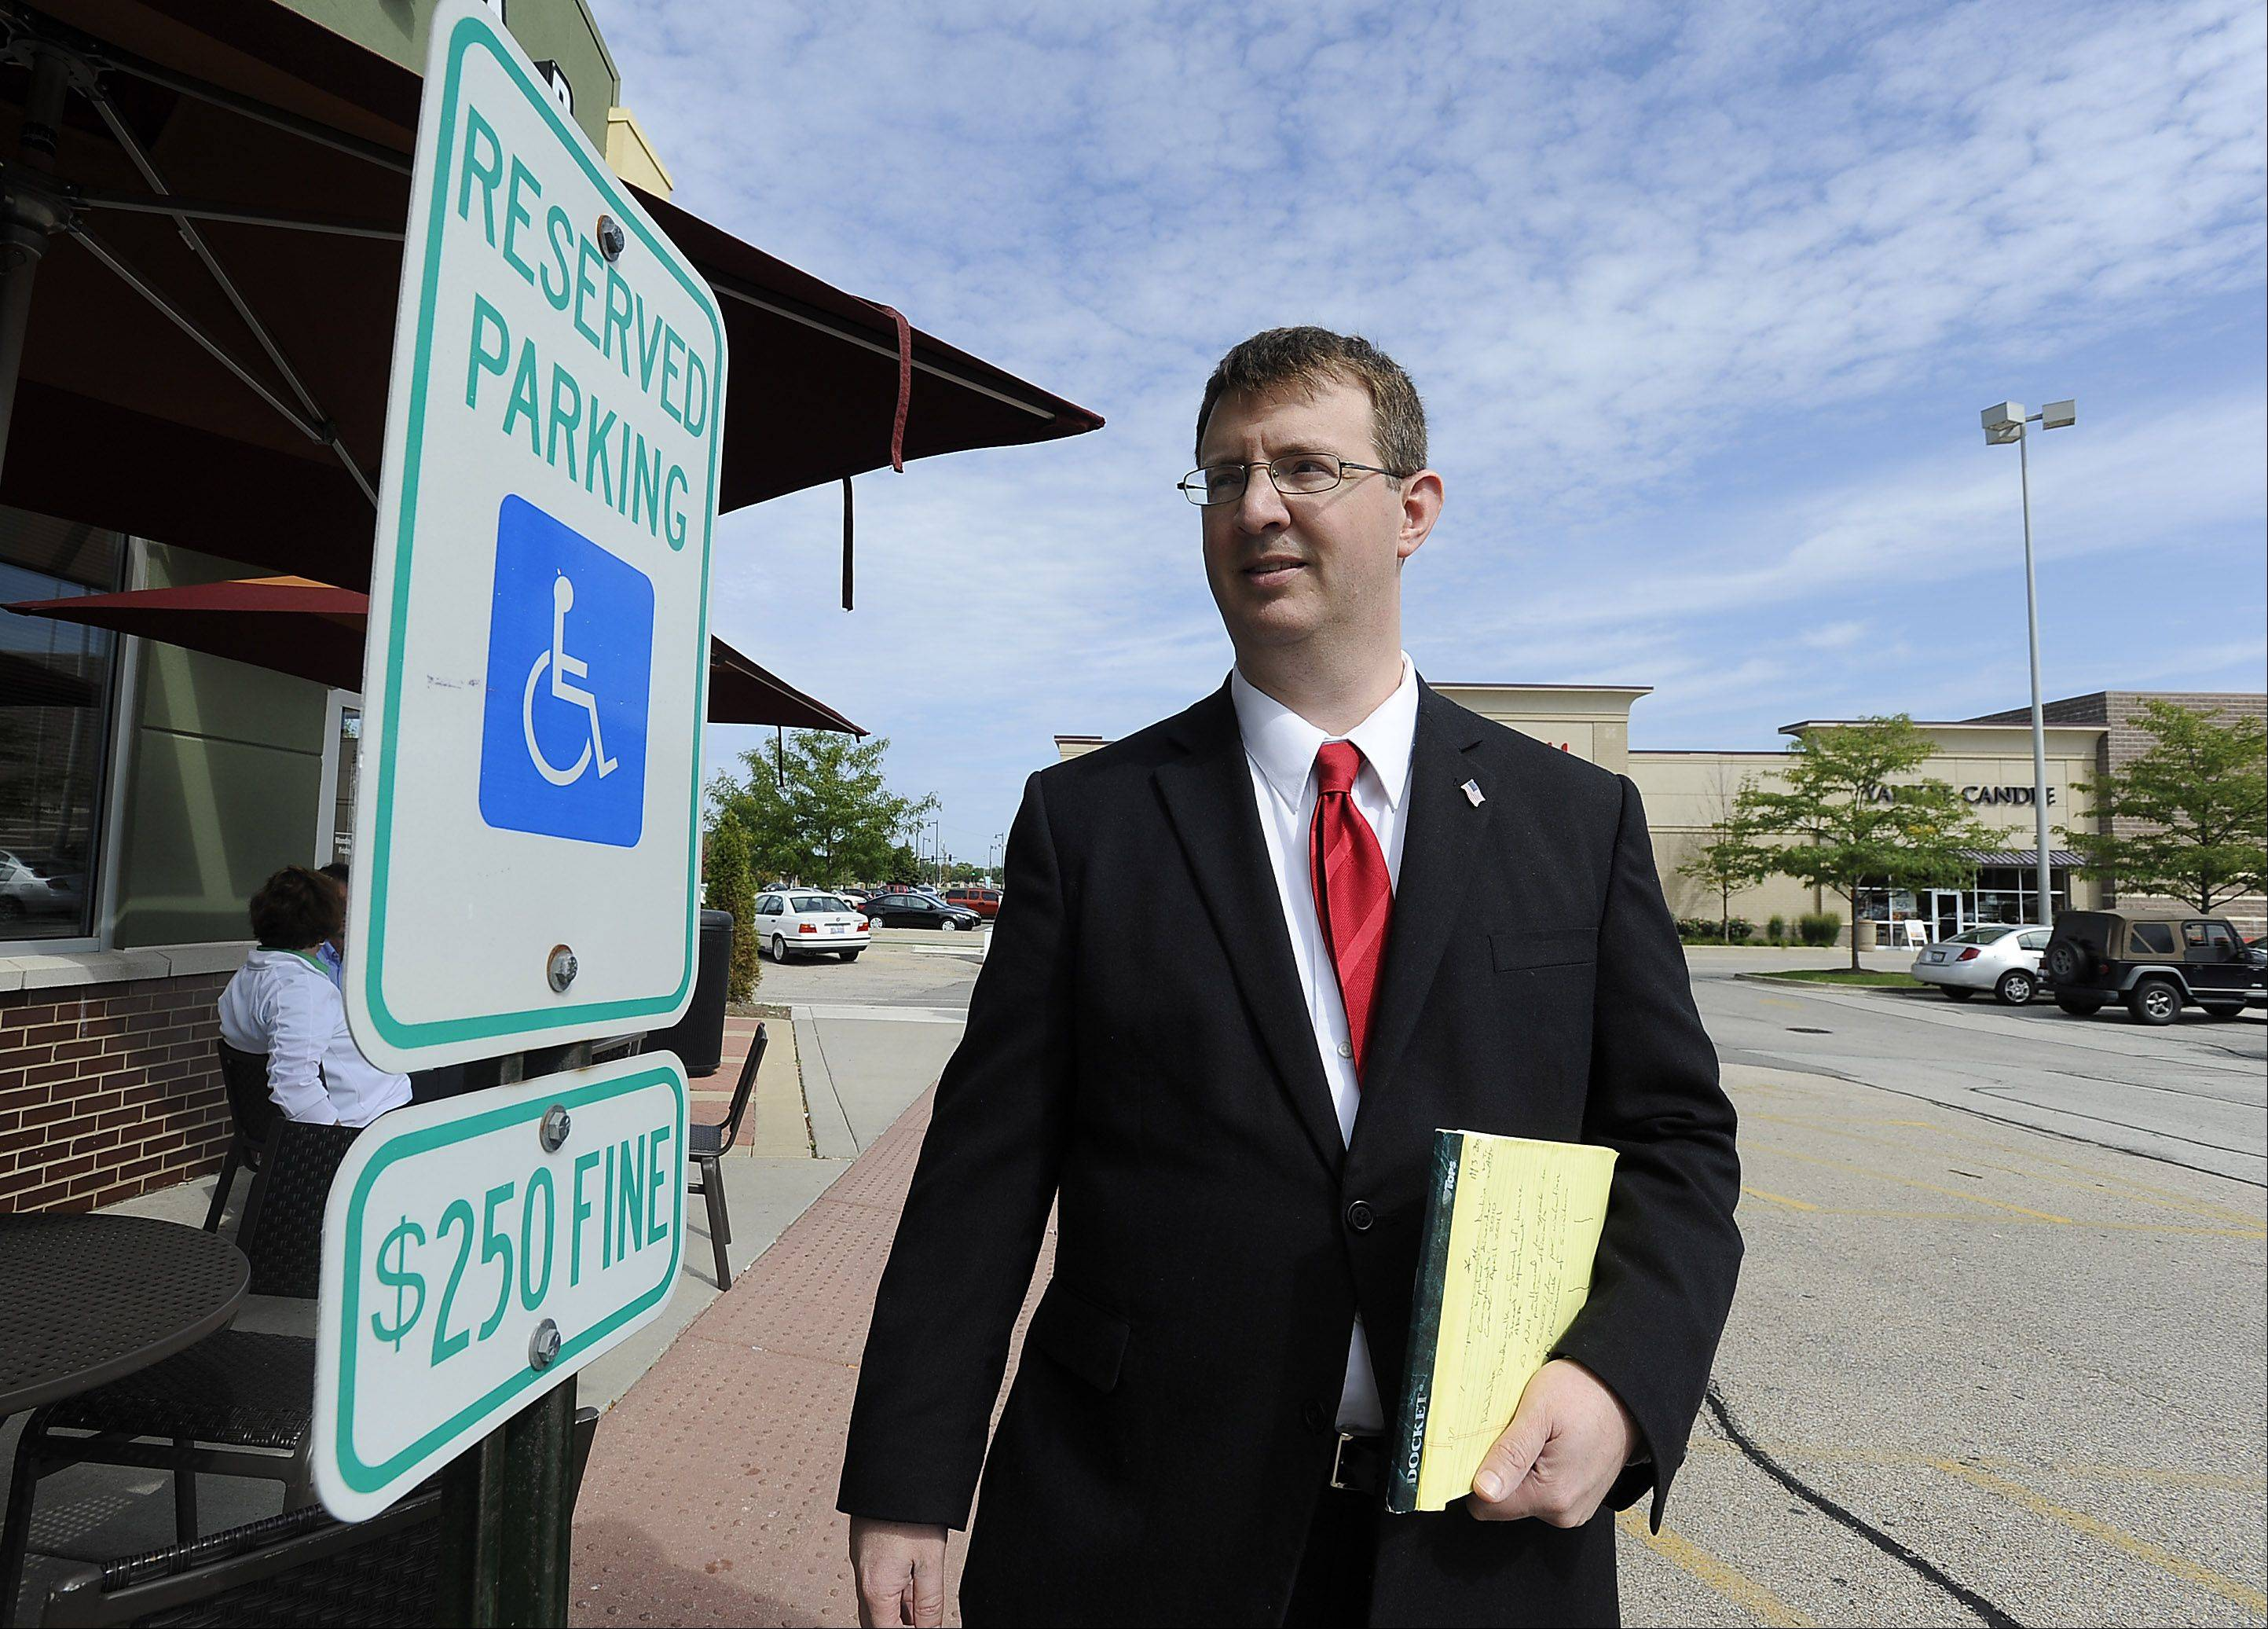 Streamwood man's letters to businesses target ADA compliance